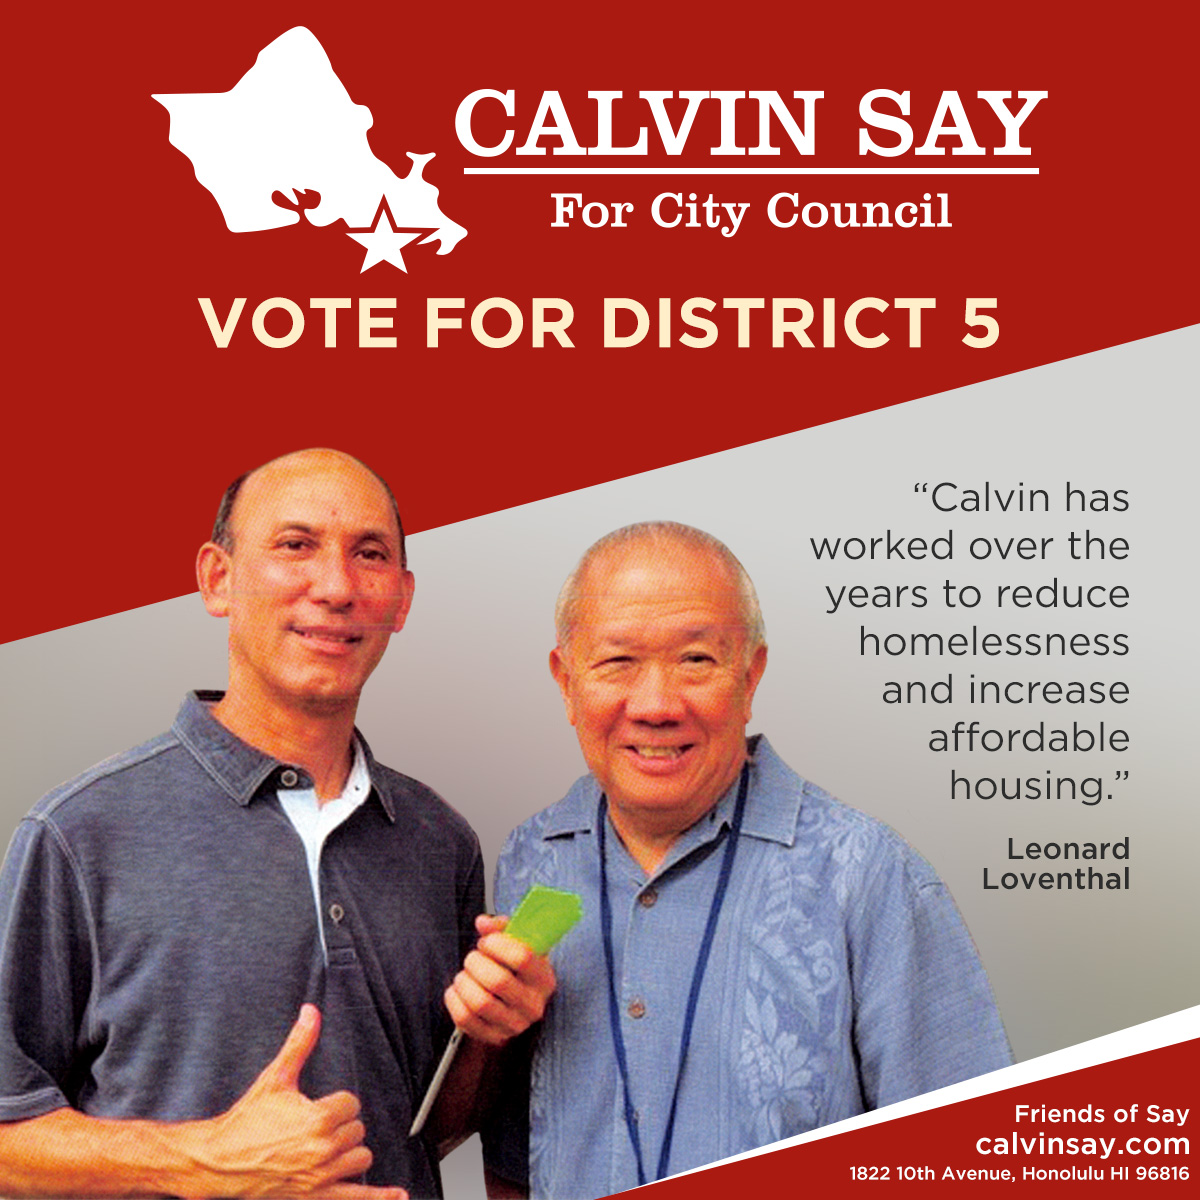 Leonard Loventhal supports Speaker Emeritus Calvin K.Y. Say for Honolulu City Council.